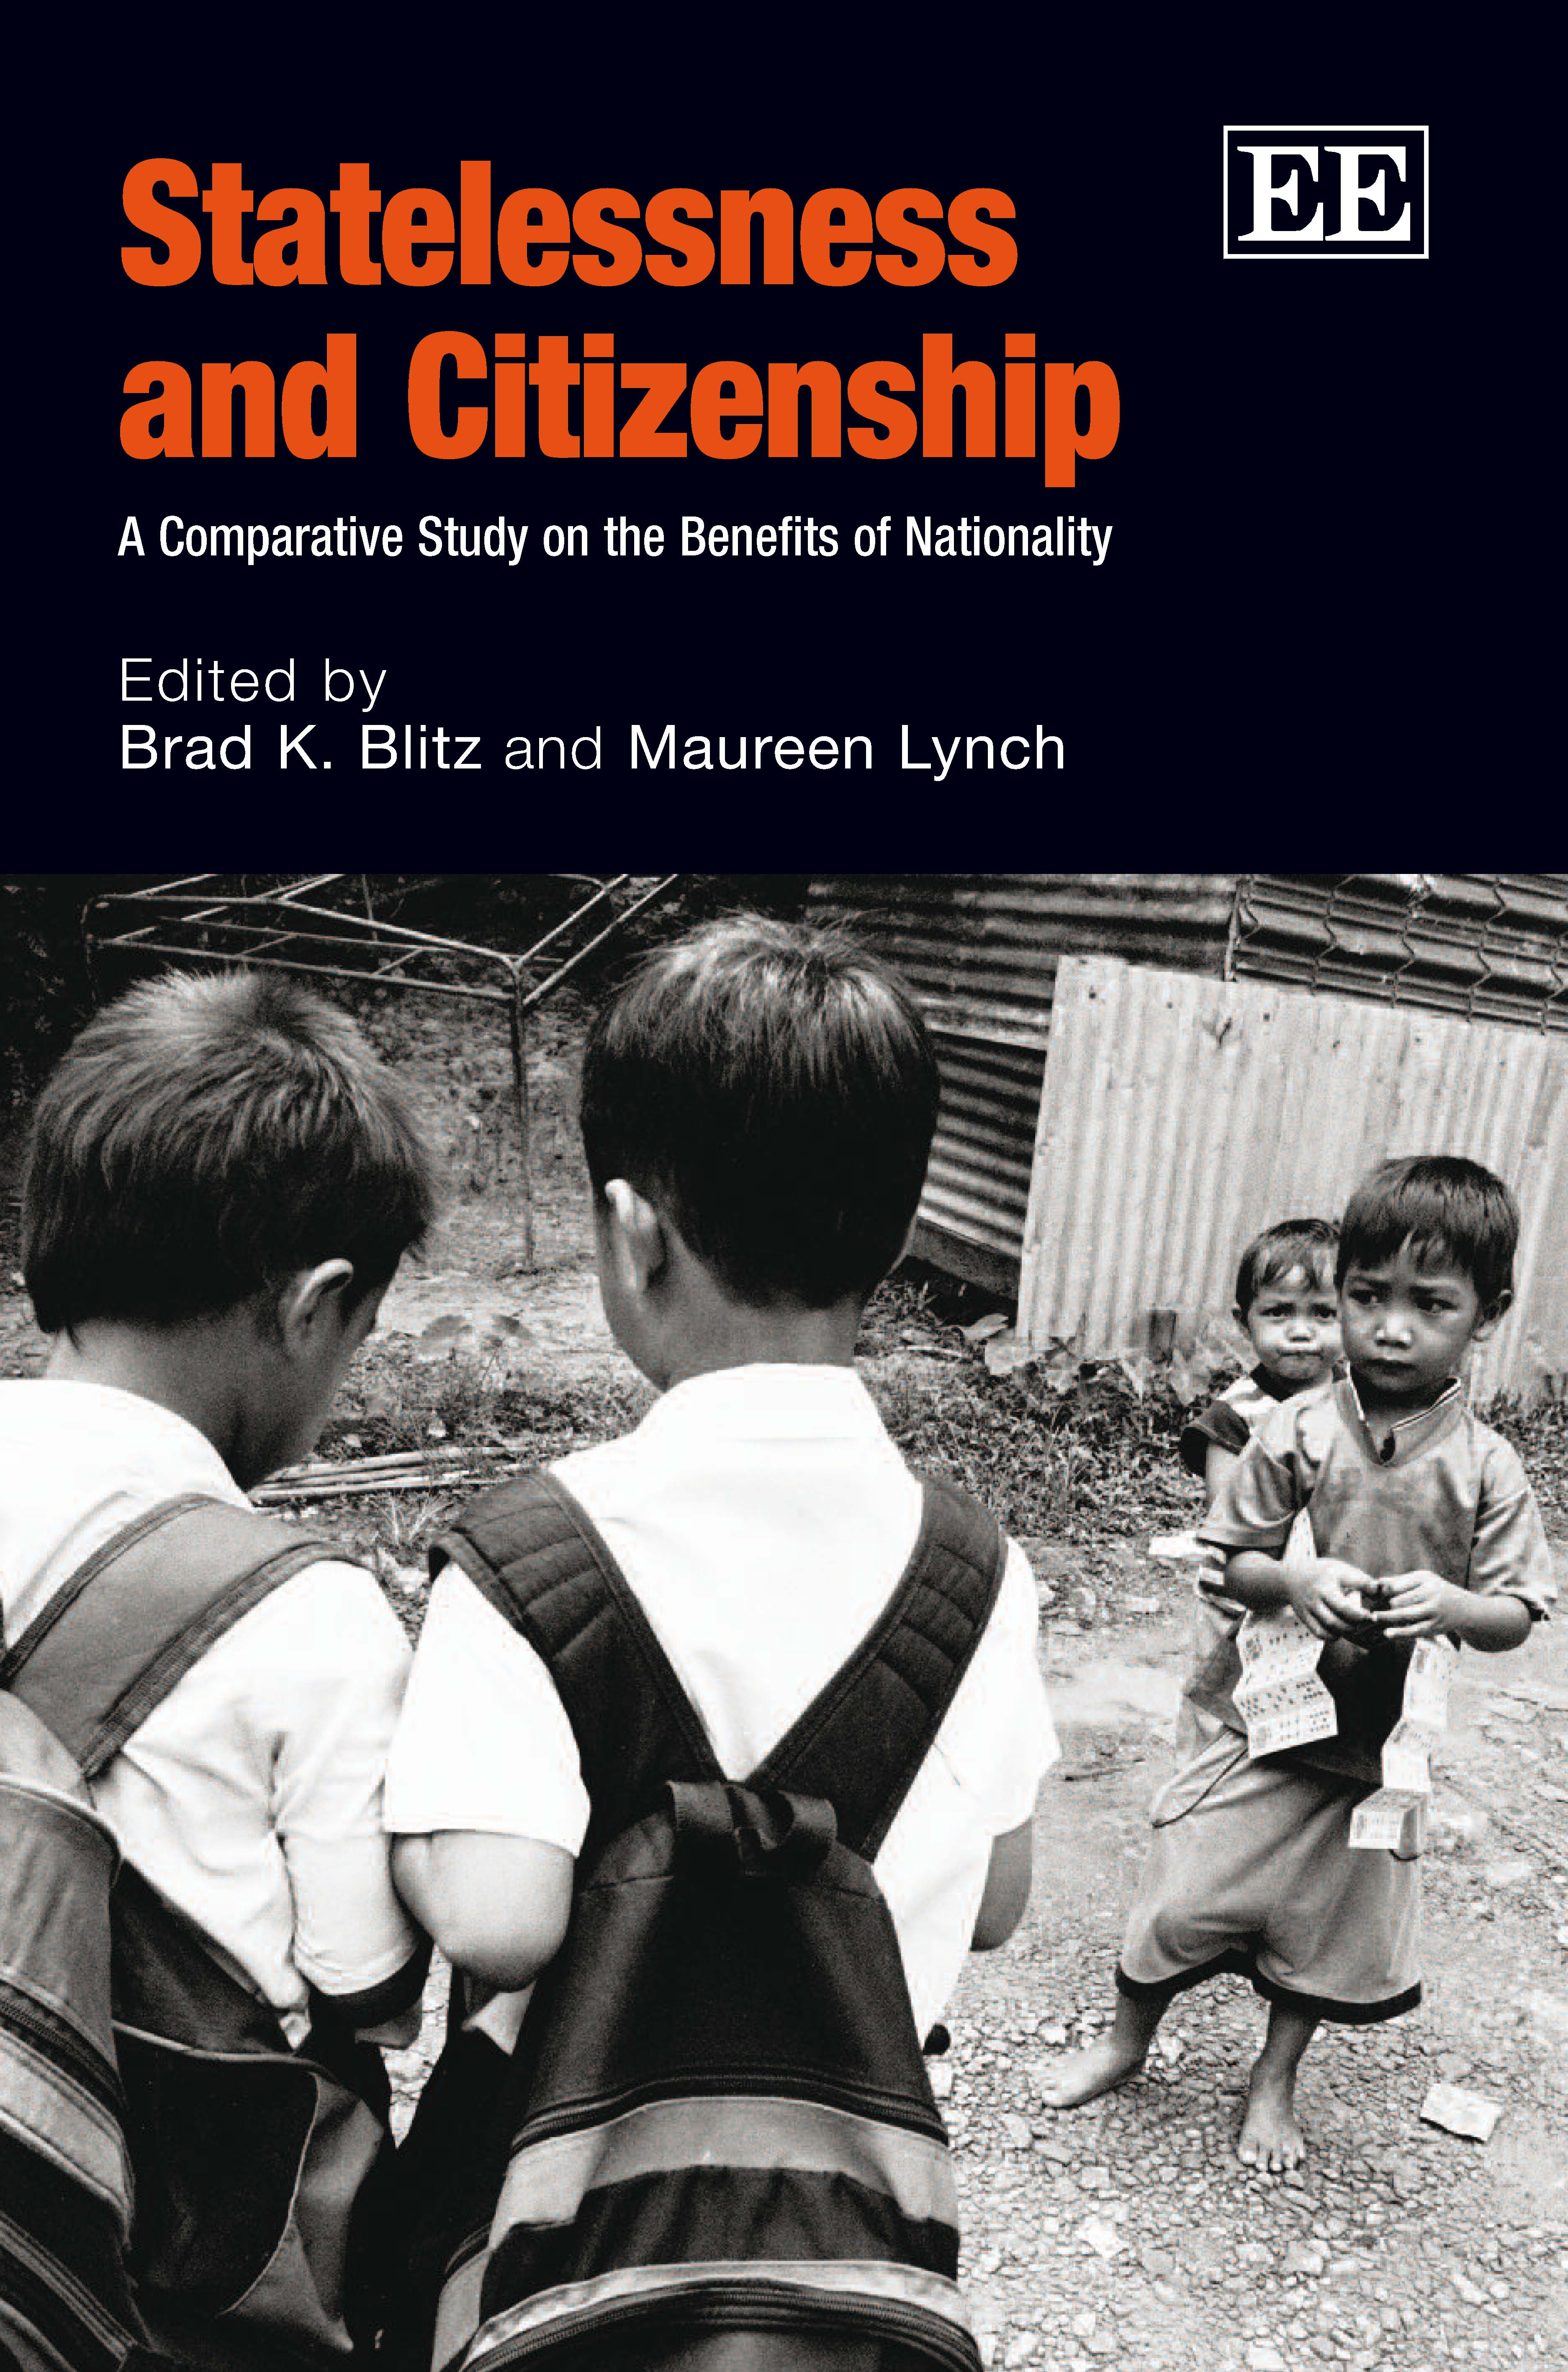 Statelessness and Citizenship